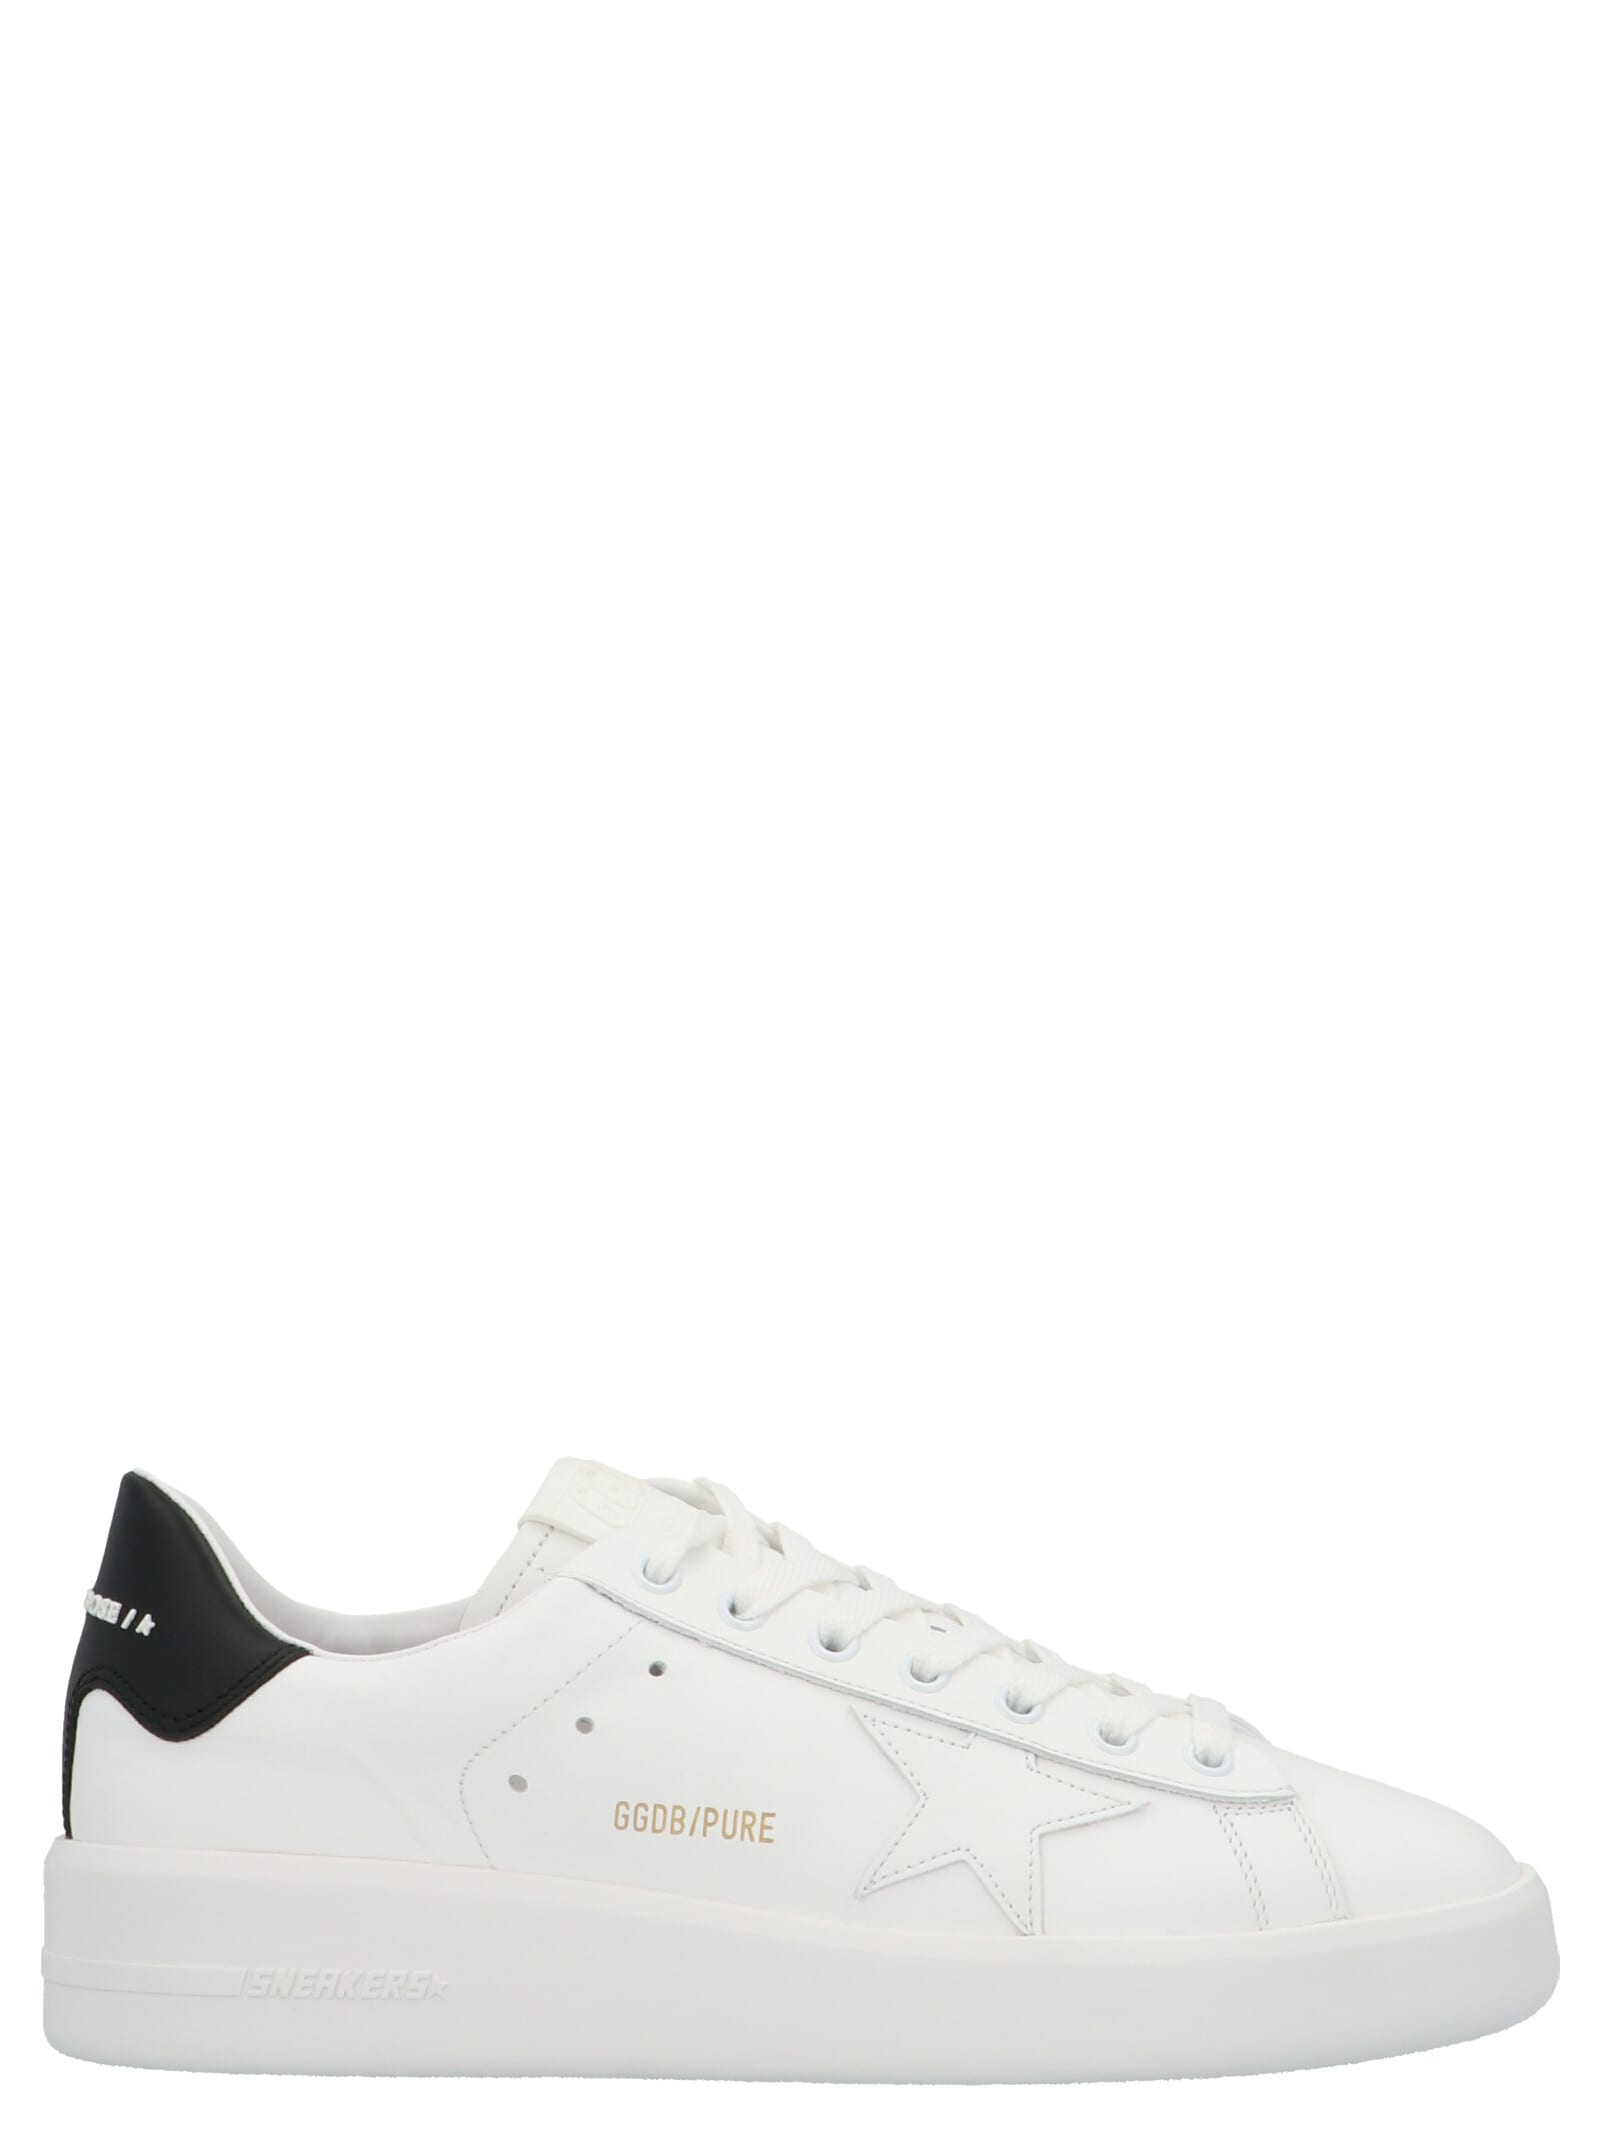 Buy Golden Goose ballstar Shoes online, shop Golden Goose shoes with free shipping